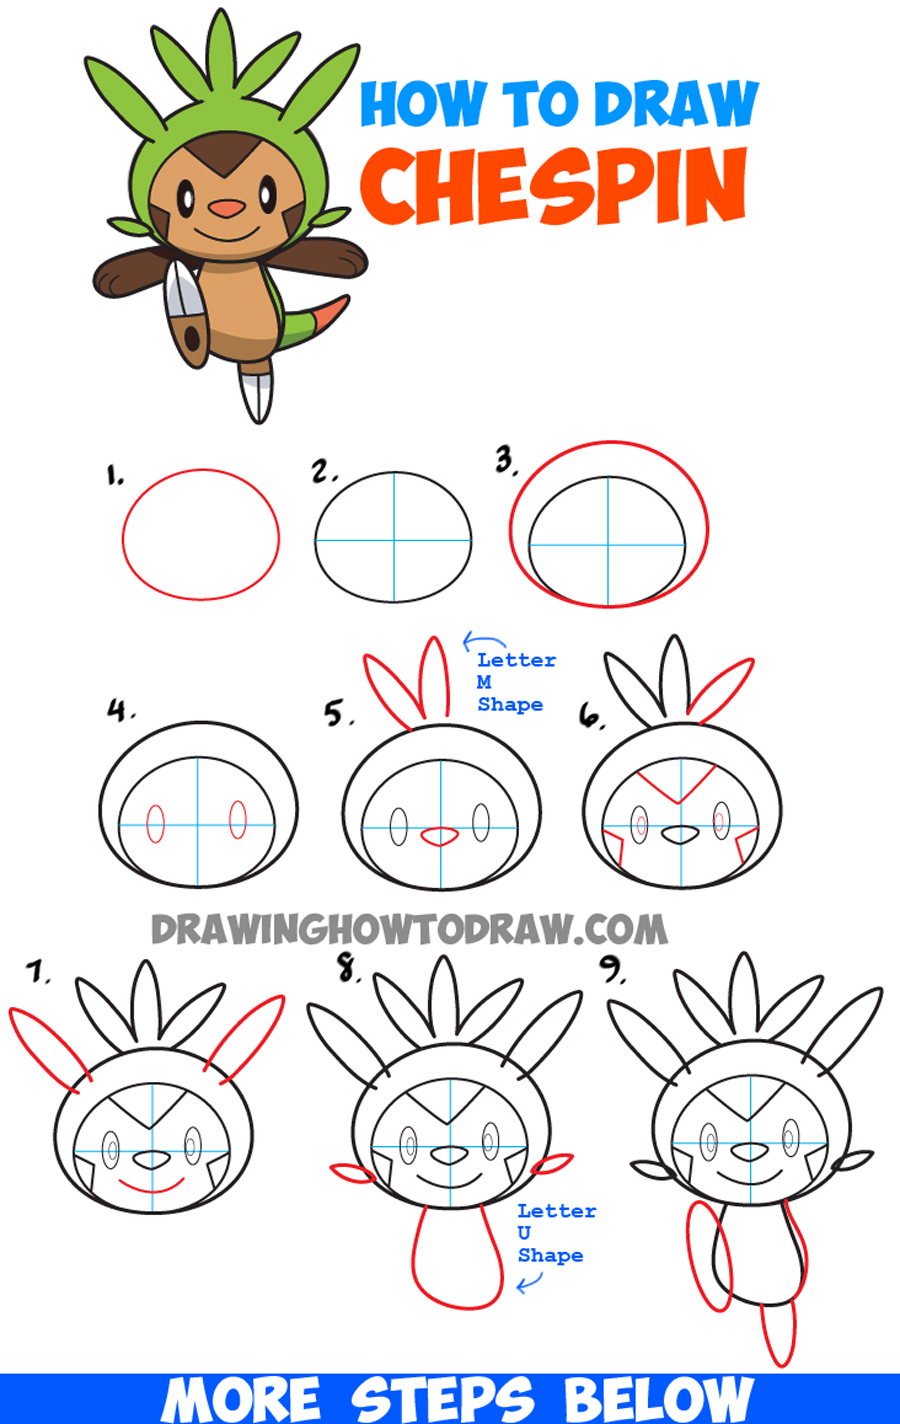 How to draw chespin from pokemon easy step by step drawing for How to make cartoon drawings step by step